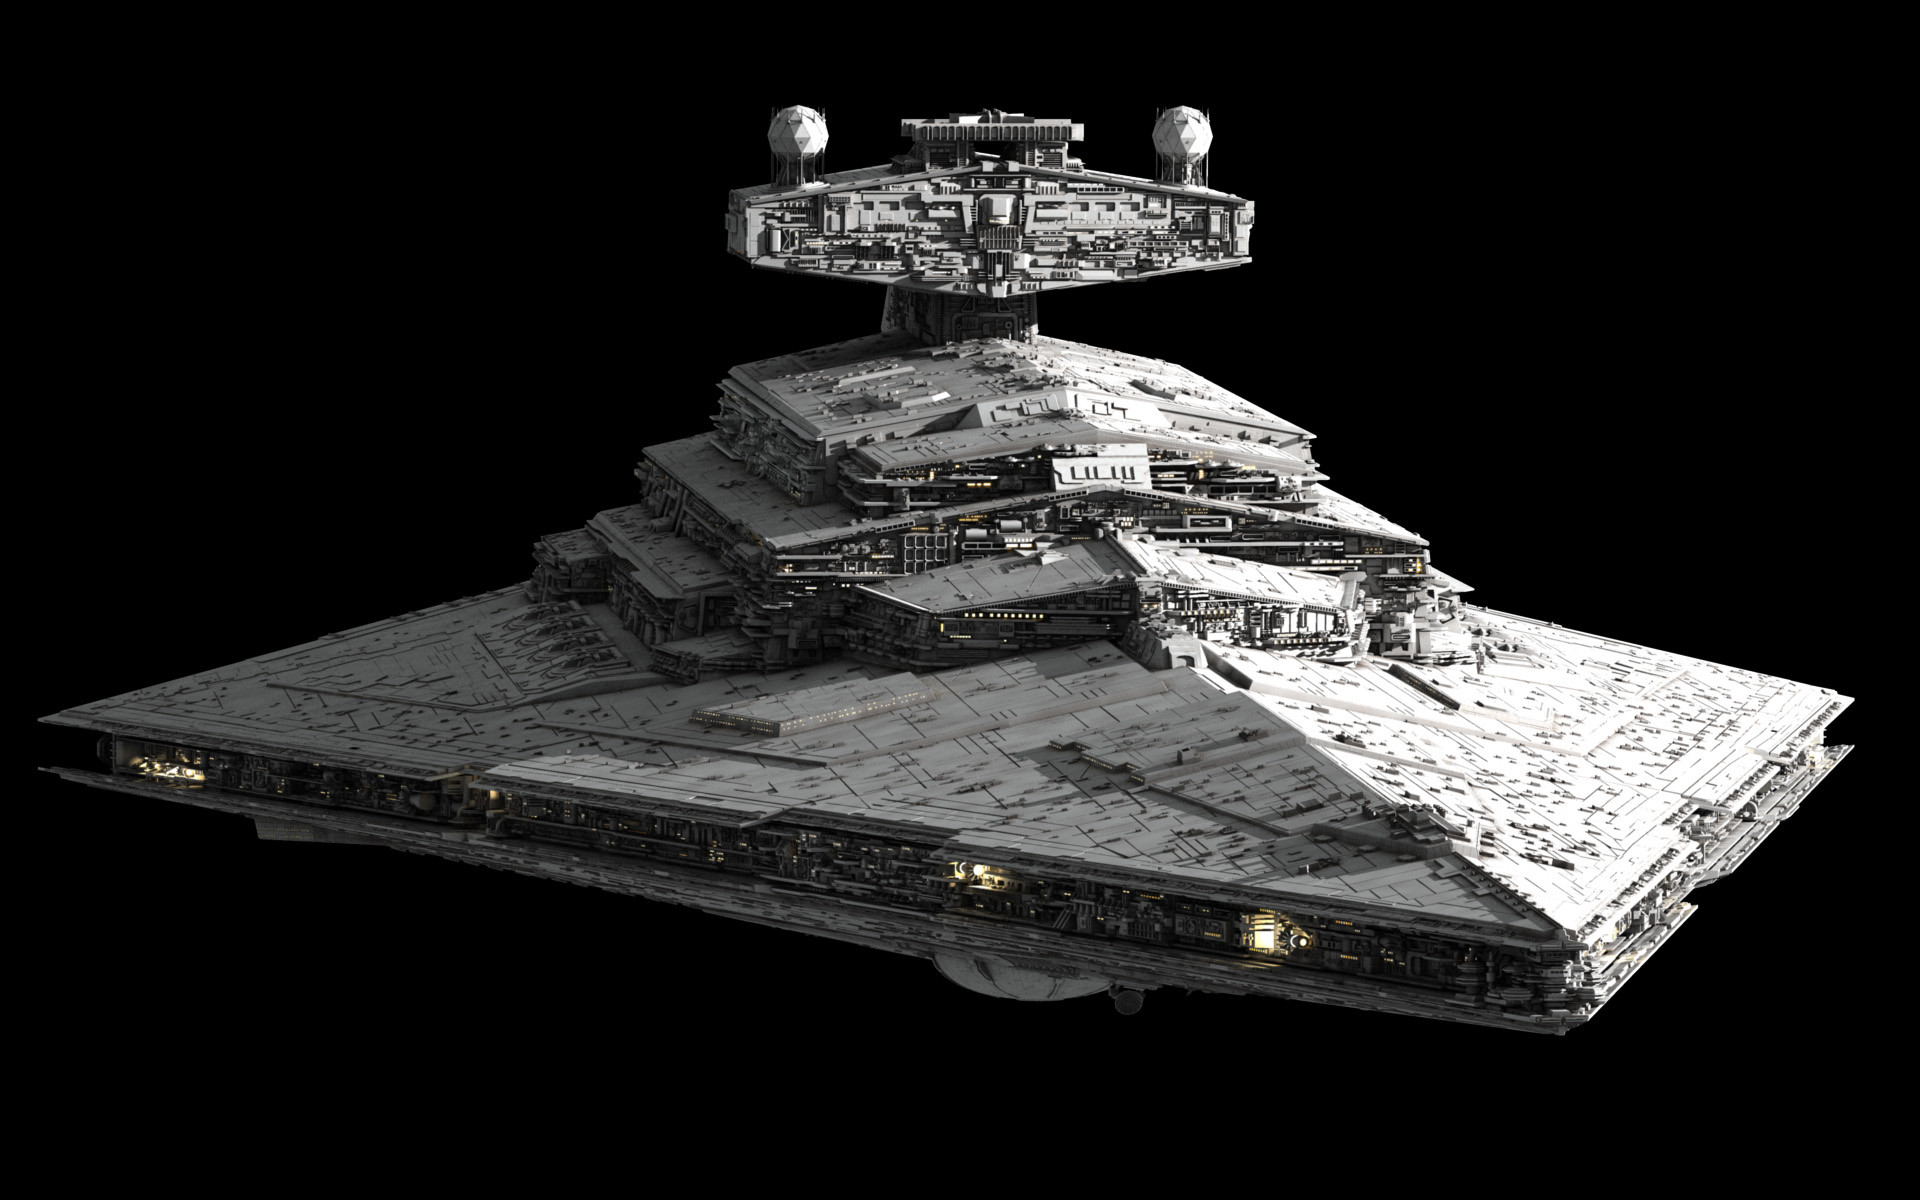 Imperial Star Destroyer built by Ansel Hsiao (Fractalsponge .